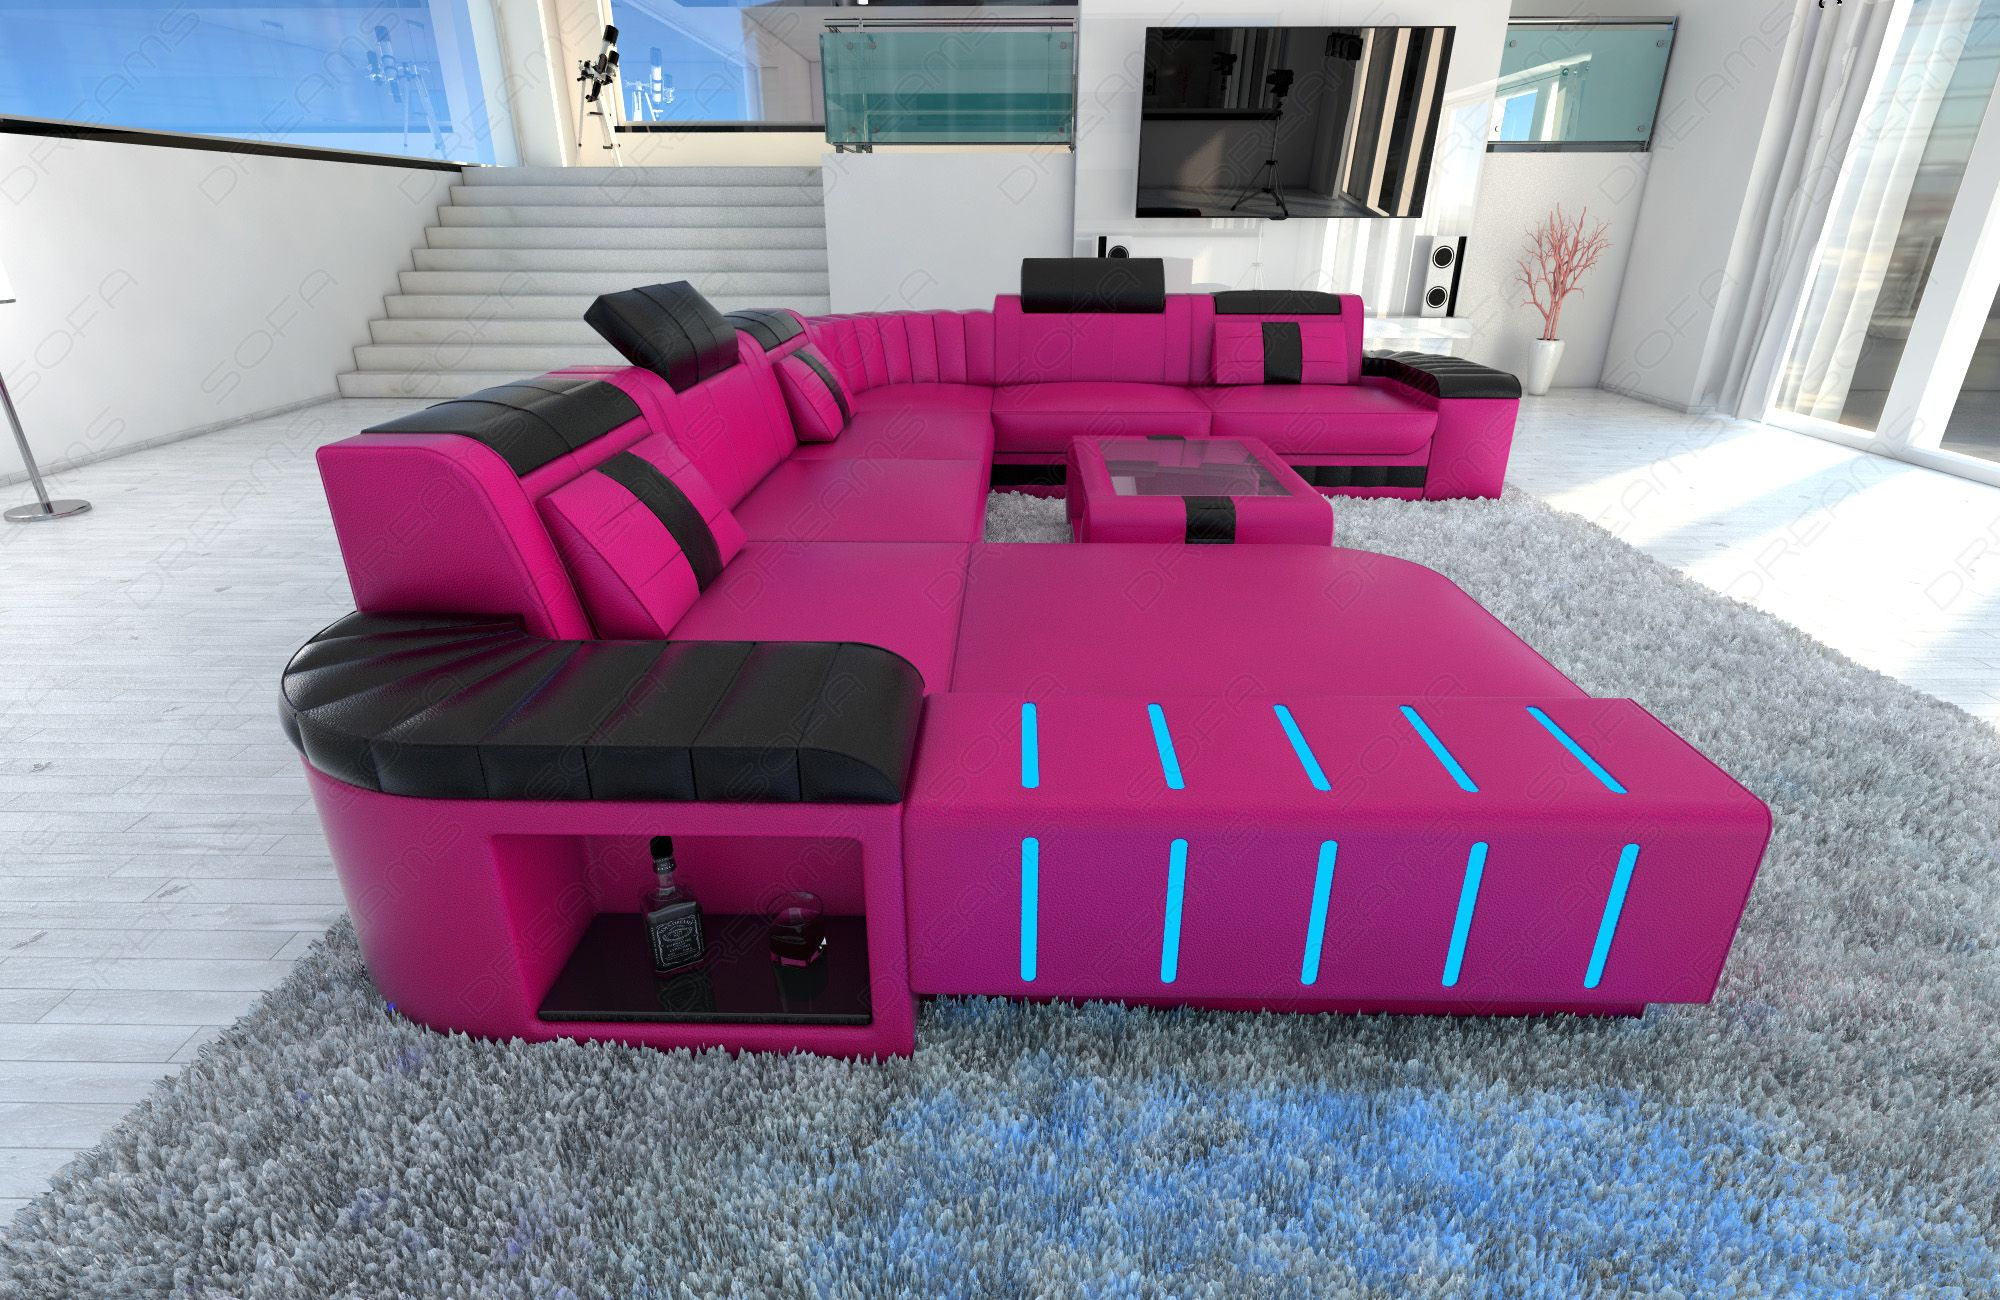 XXL Sectional Sofa BELLAGIO LED U Shaped pink black | Pink black ...